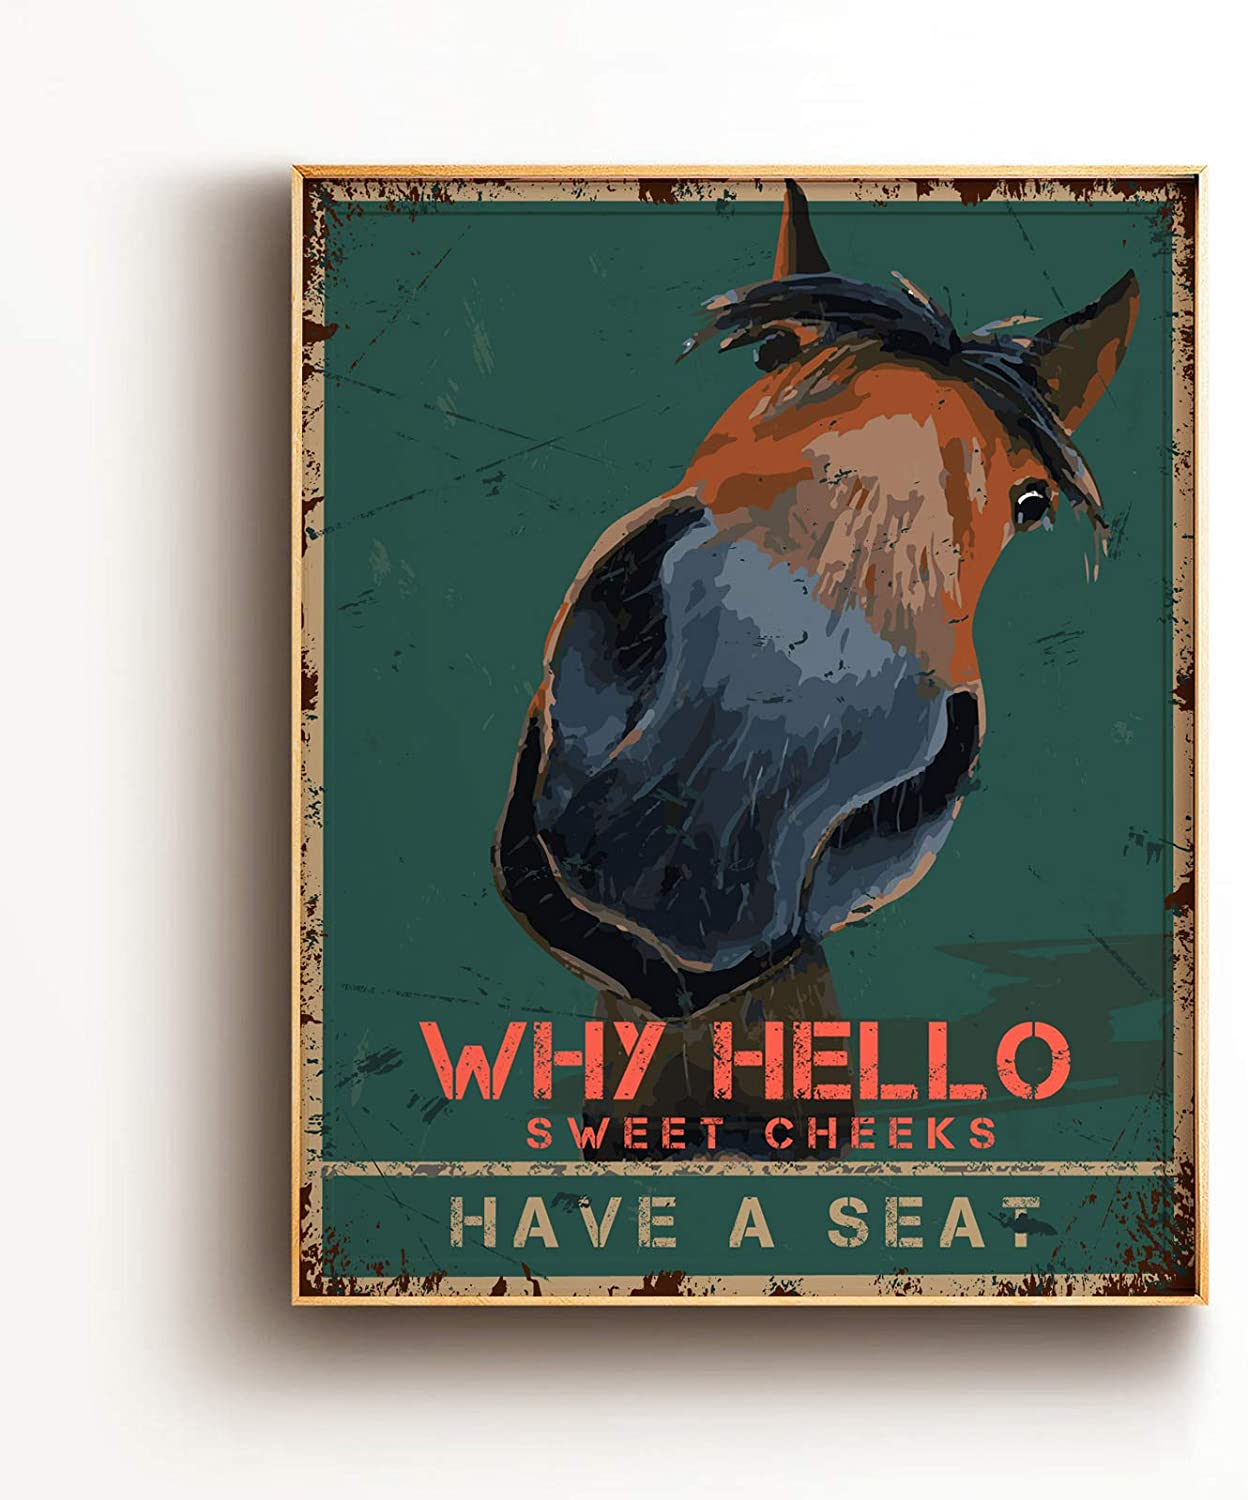 Funny Bathroom Quote Wall Art Print Poster Decor - Vintage Hello Sweet Cheeks Horse Poster for Office/Home/Classroom Decor Gifts - Best Farmhouse Decor Gift Ideas for Women Men Friends - 8x10 Unframed